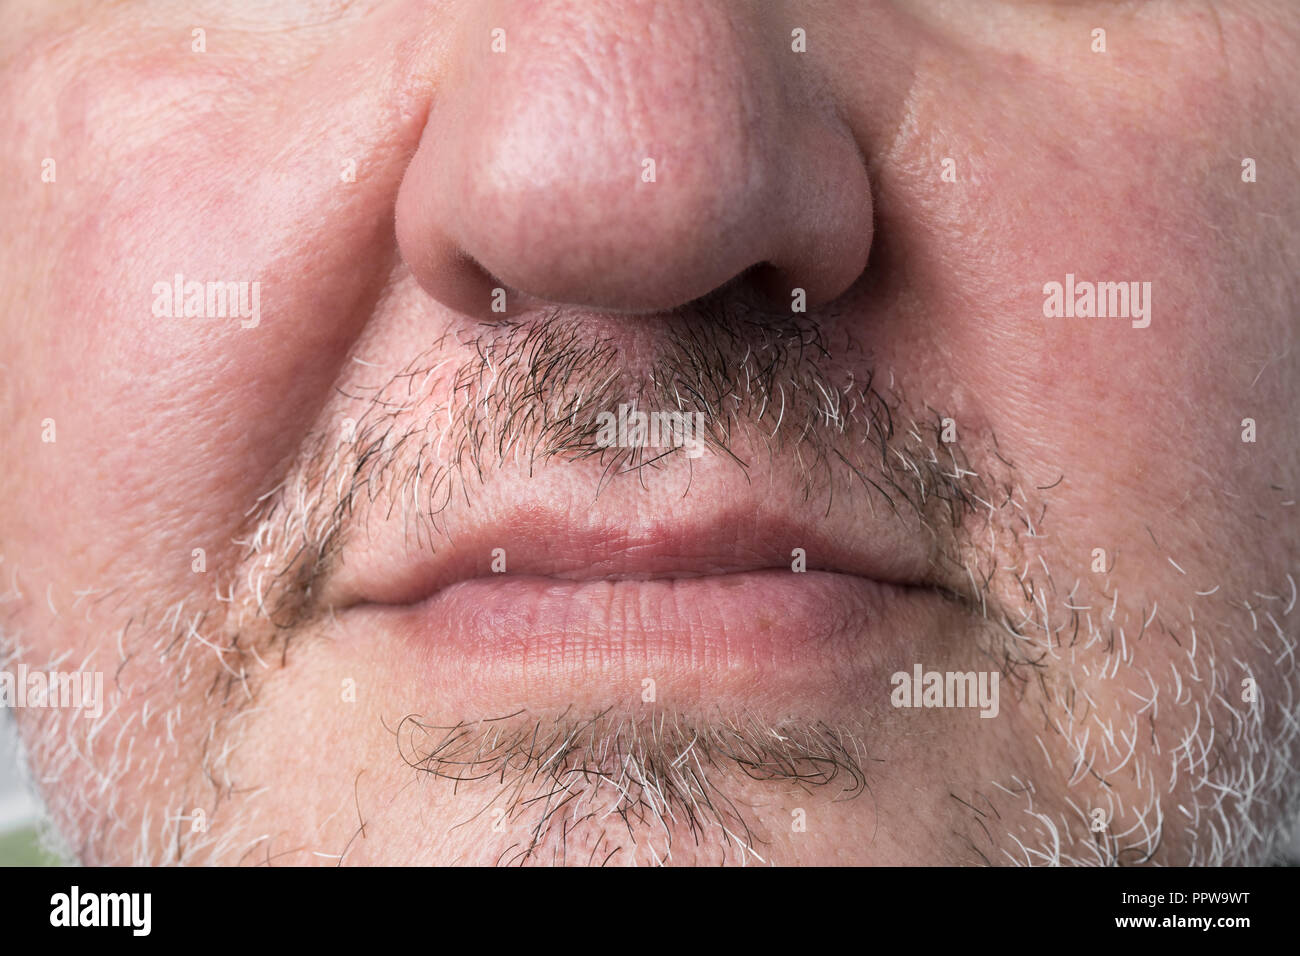 Man with natural grown moustache and facial hair for november cancer awareness month. - Stock Image